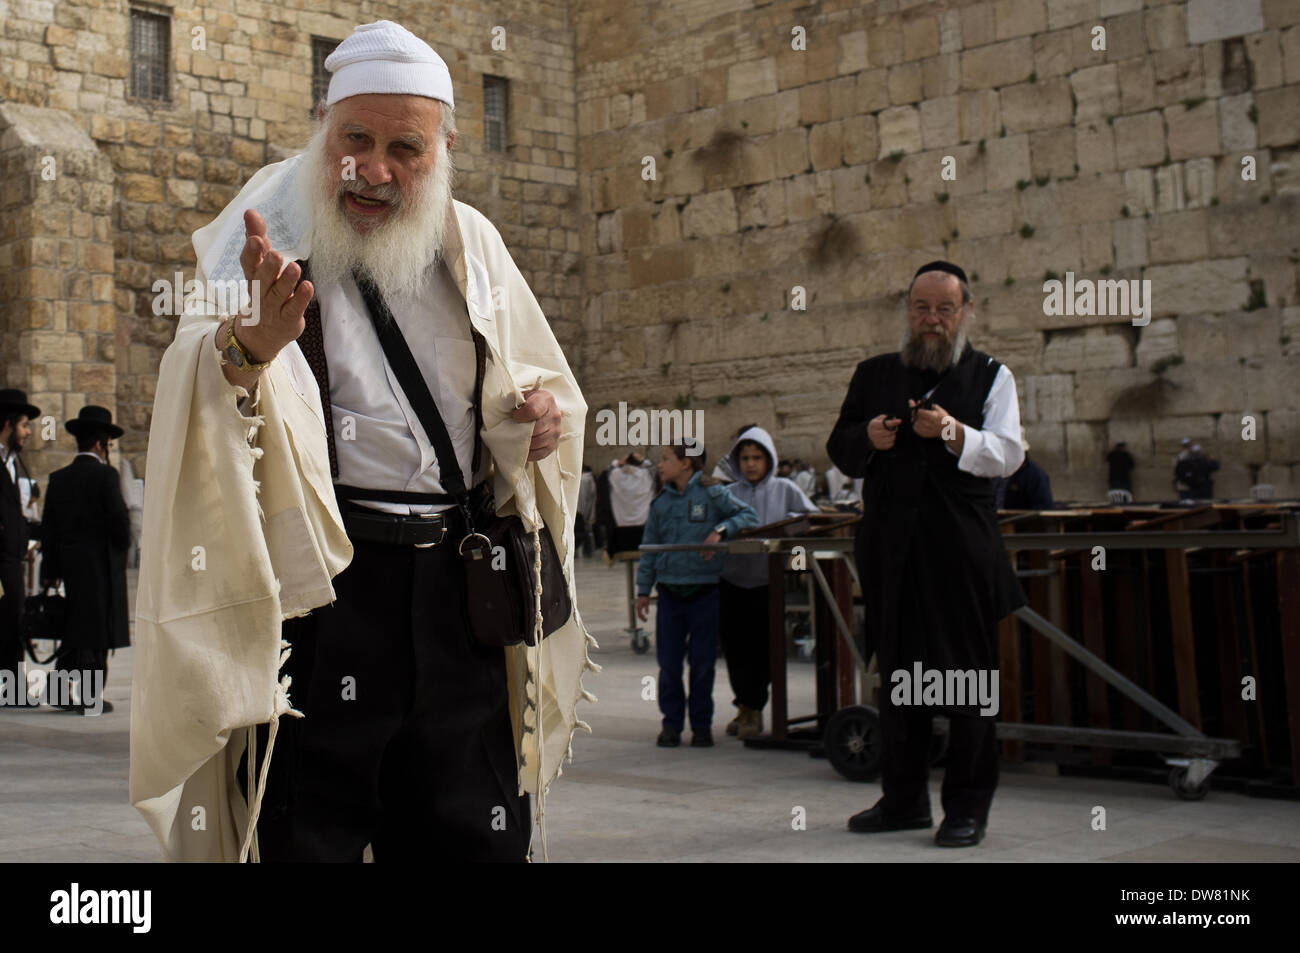 Jerusalem, Israel. 3rd March, 2014. A religious Jewish man loudly protests the manner of prayer and singing out loud being conducted by Women of the Wall in the women's section of the Kotel, the Western Wall, on the first of the Jewish month of Adar II. Credit:  Nir Alon/Alamy Live News - Stock Image